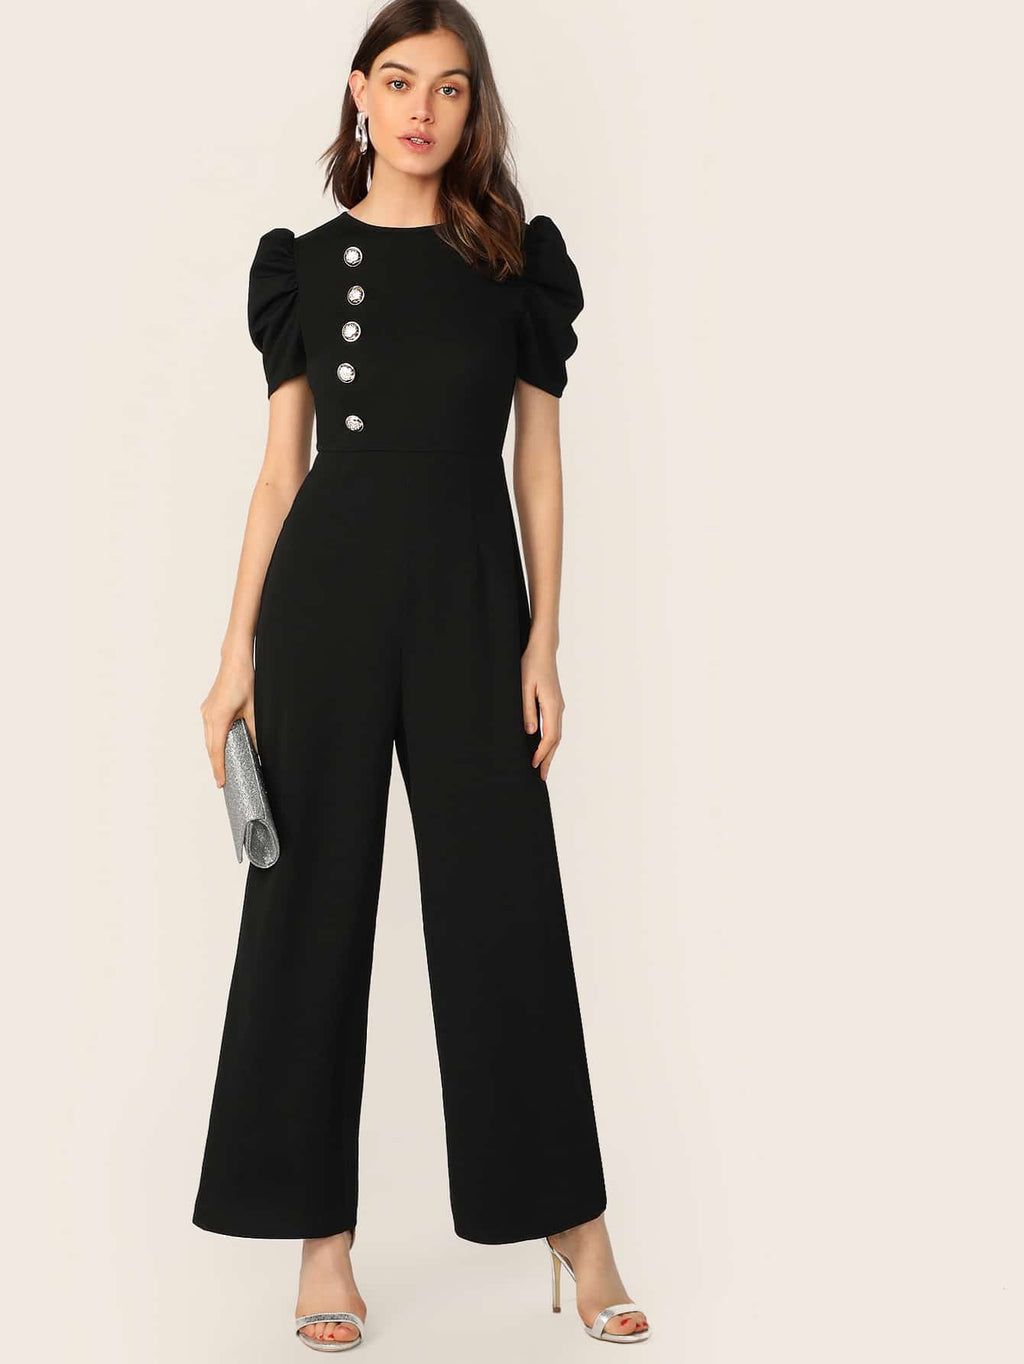 Button Embellished Puff Sleeve Wide Leg Jumpsuit-Trendy-JayBoutique-Black-XS-Trendy-JayBoutique